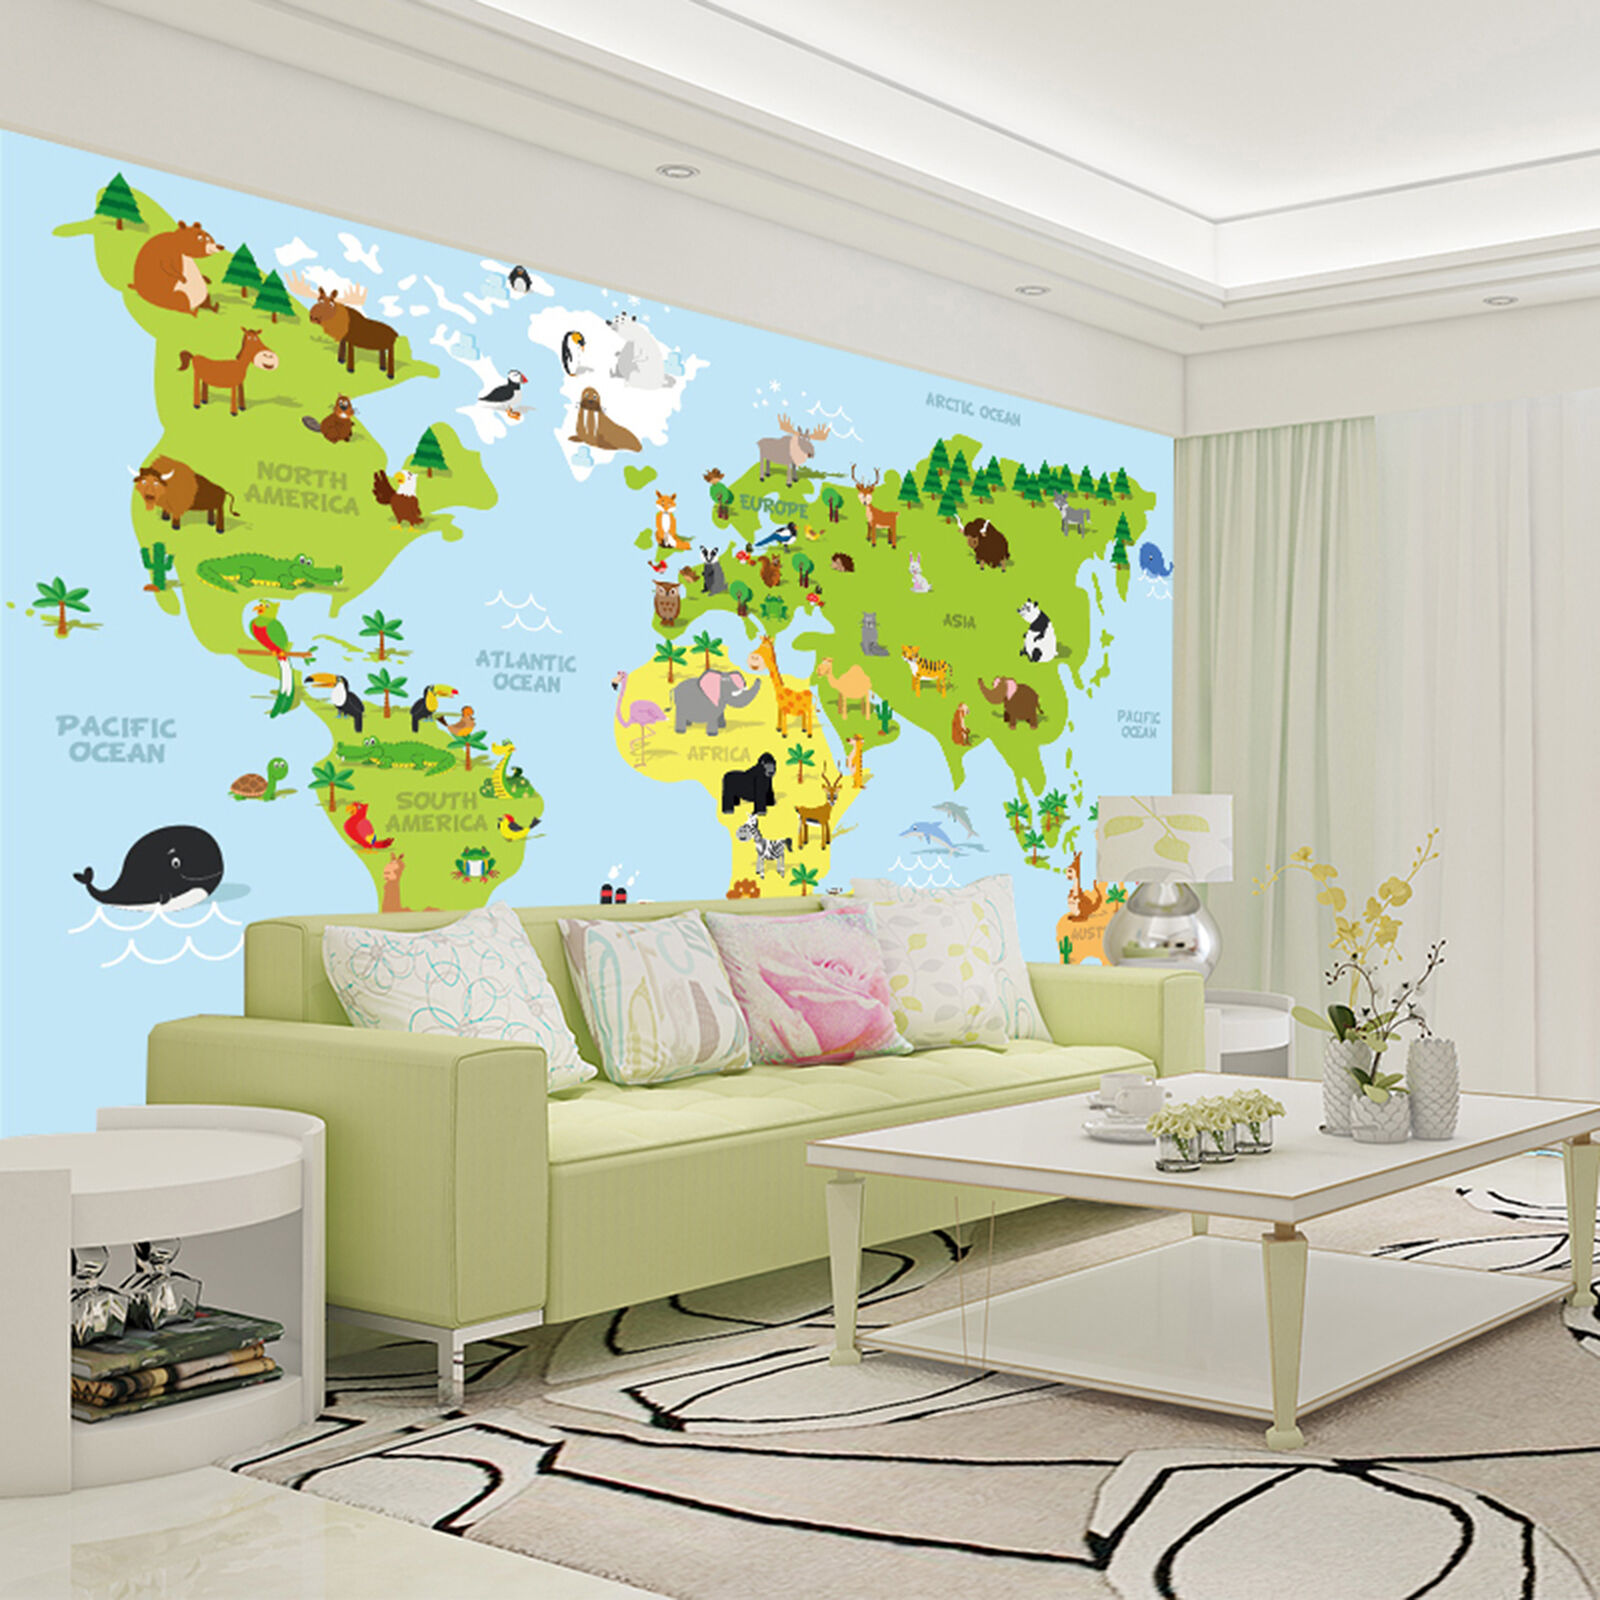 3D World Cartoon Animals Wall Paper Print Decal Wall Deco Indoor wall Mural